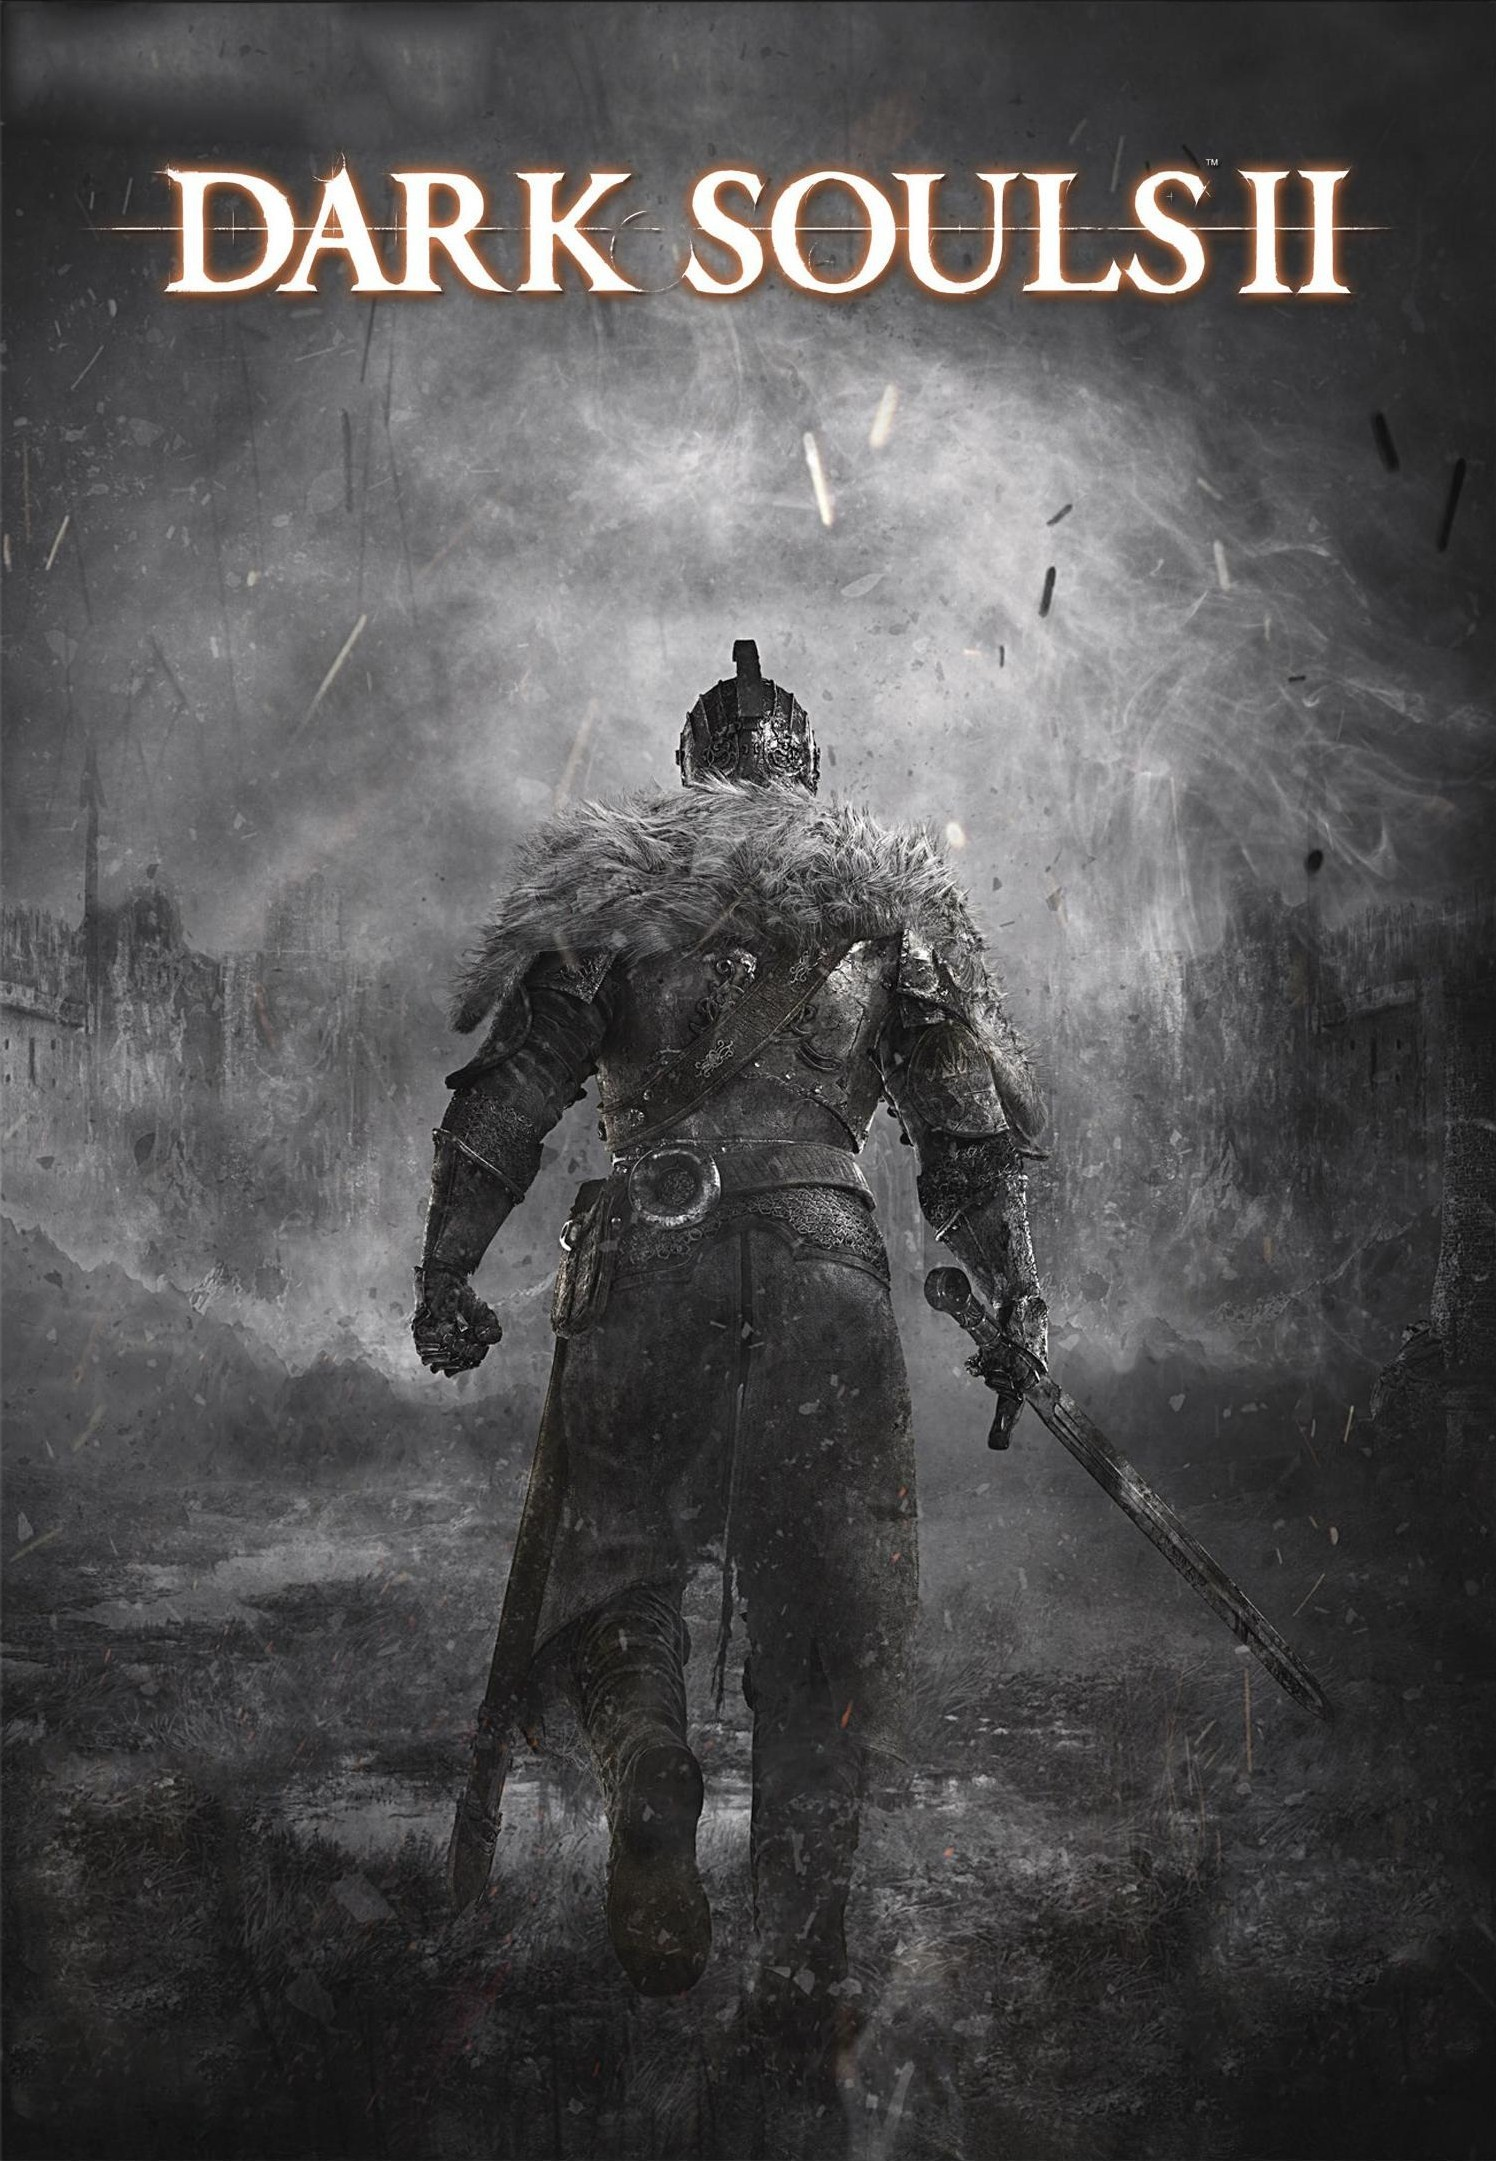 1496x2161 Dark Souls Wallpapers : 20 Best Dark Souls 2 & Dark Souls 3 Wallpapers HD  2016 : Dark Souls Wallpapers : Dark Souls a sequel to the breakout hit Dark  Souls, ...